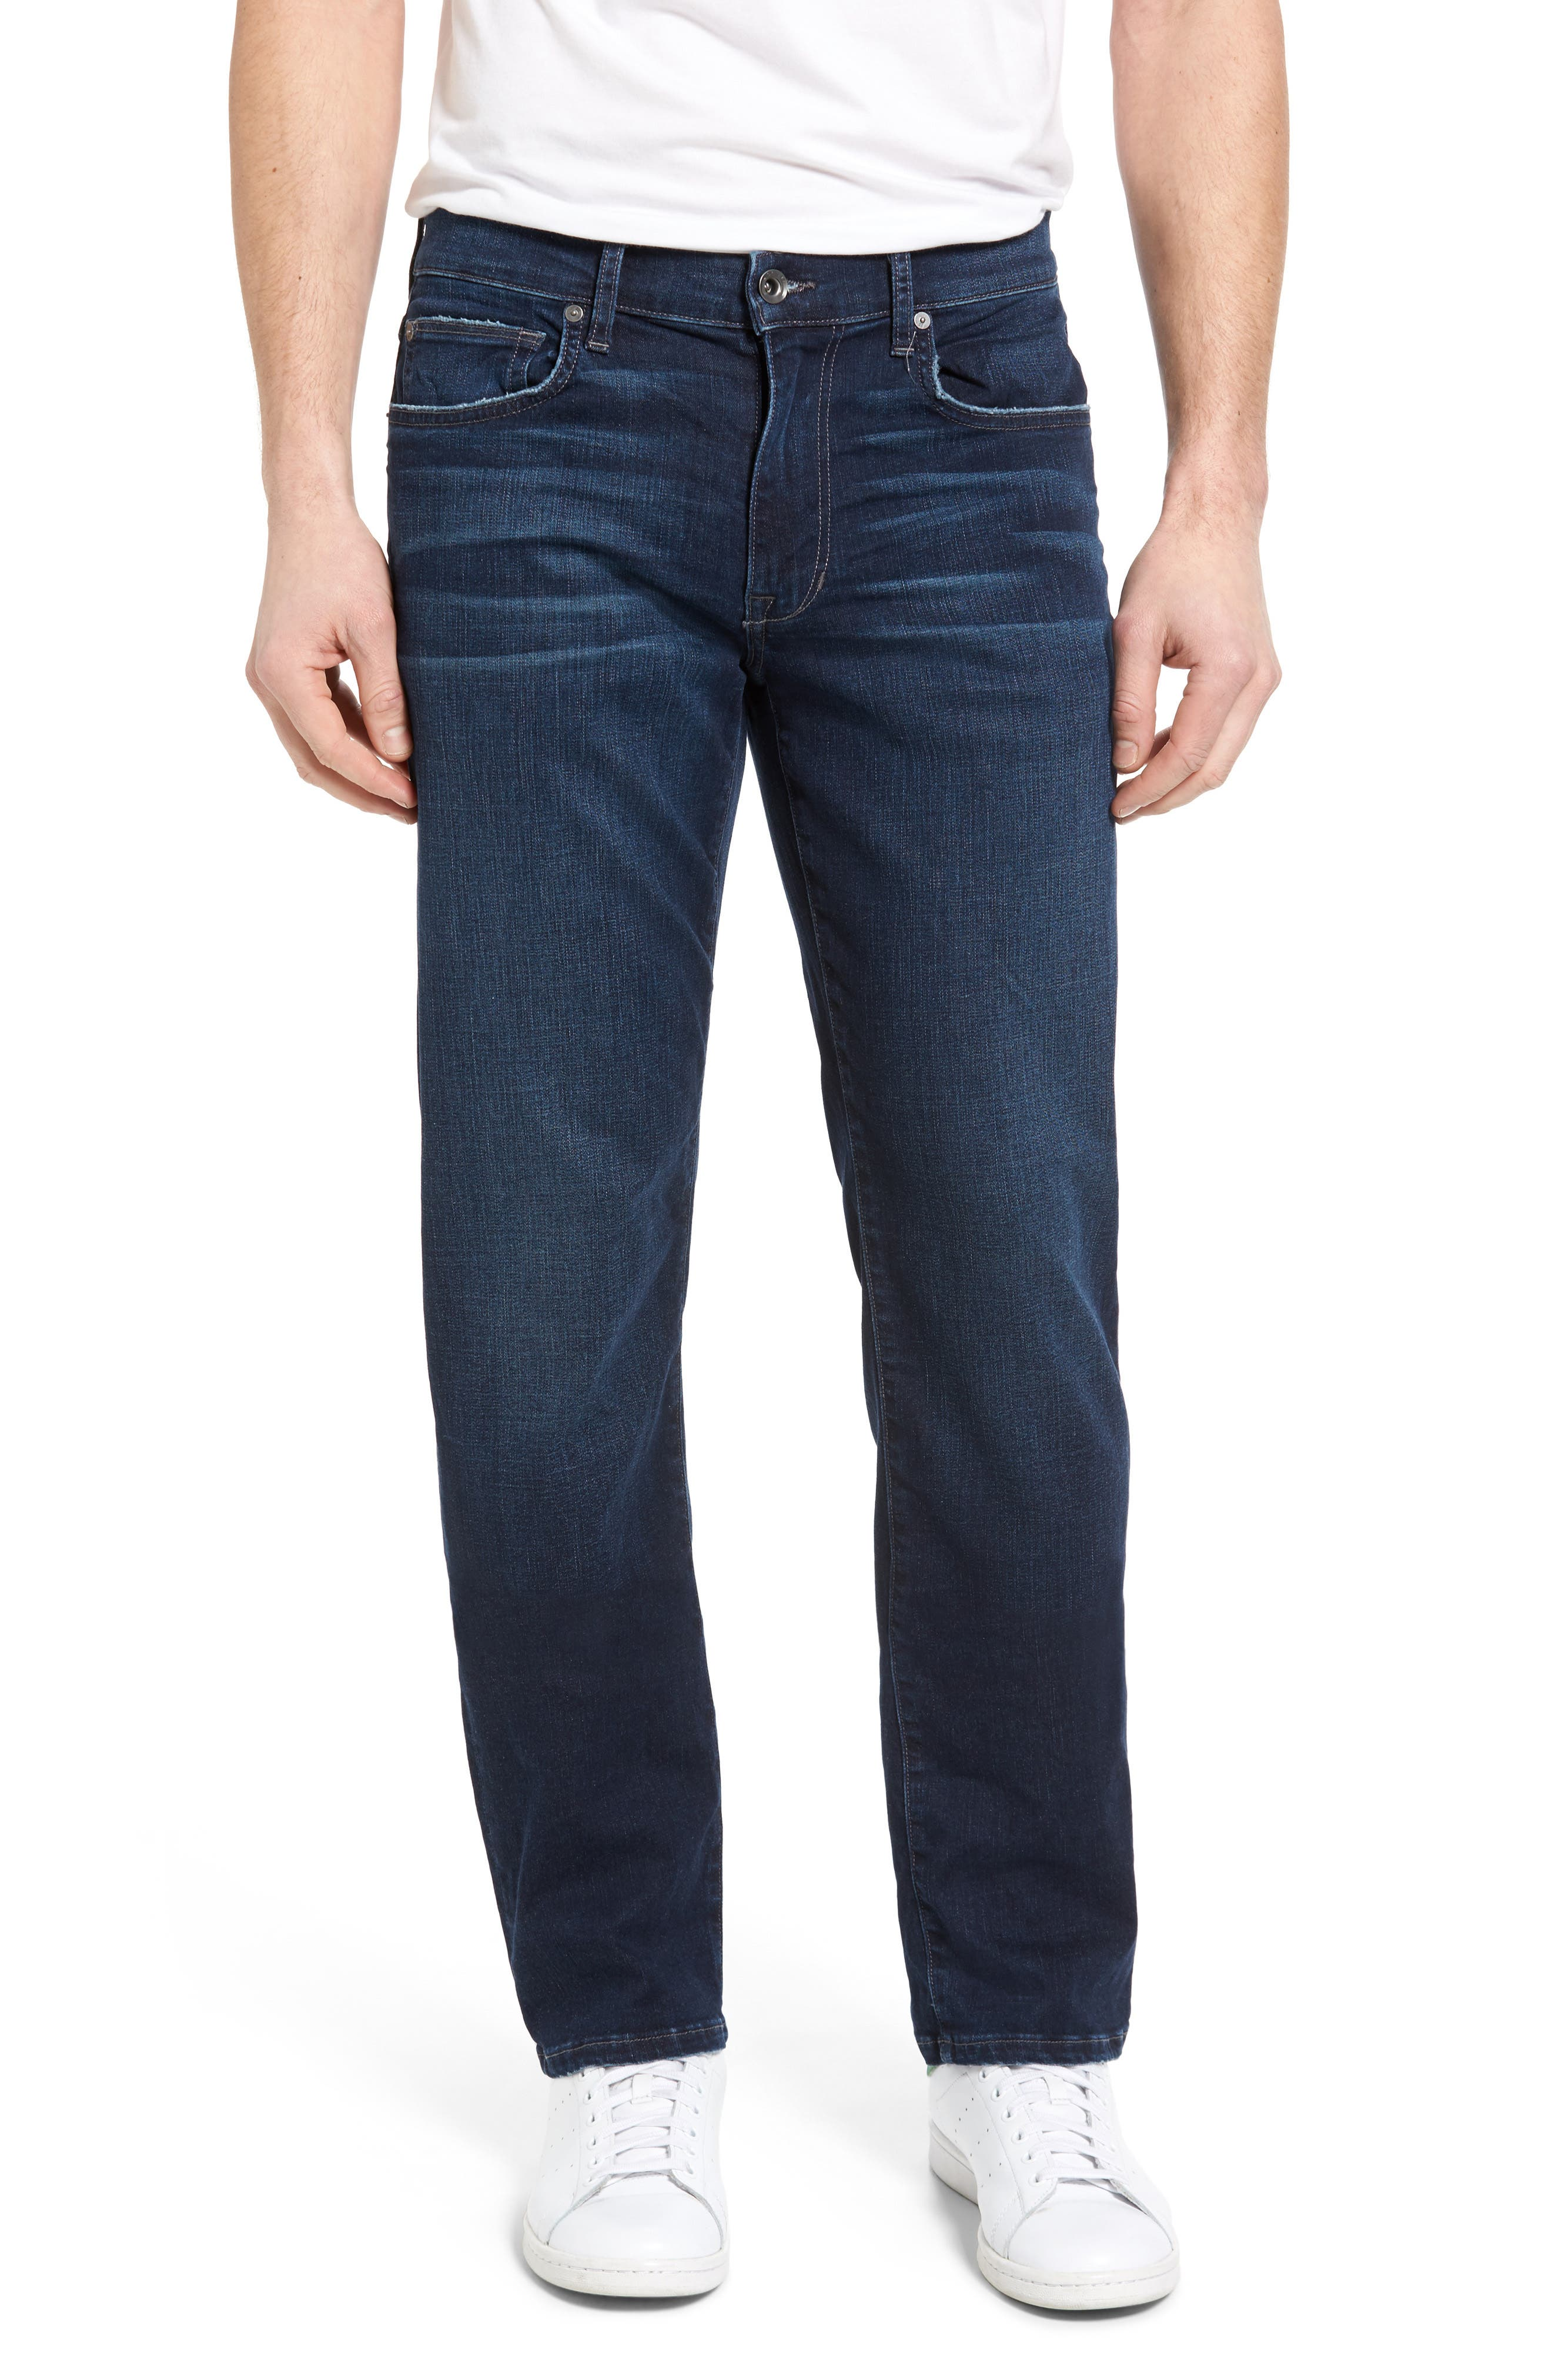 Brixton Kinetic Slim Straight Leg Jeans,                         Main,                         color, 400